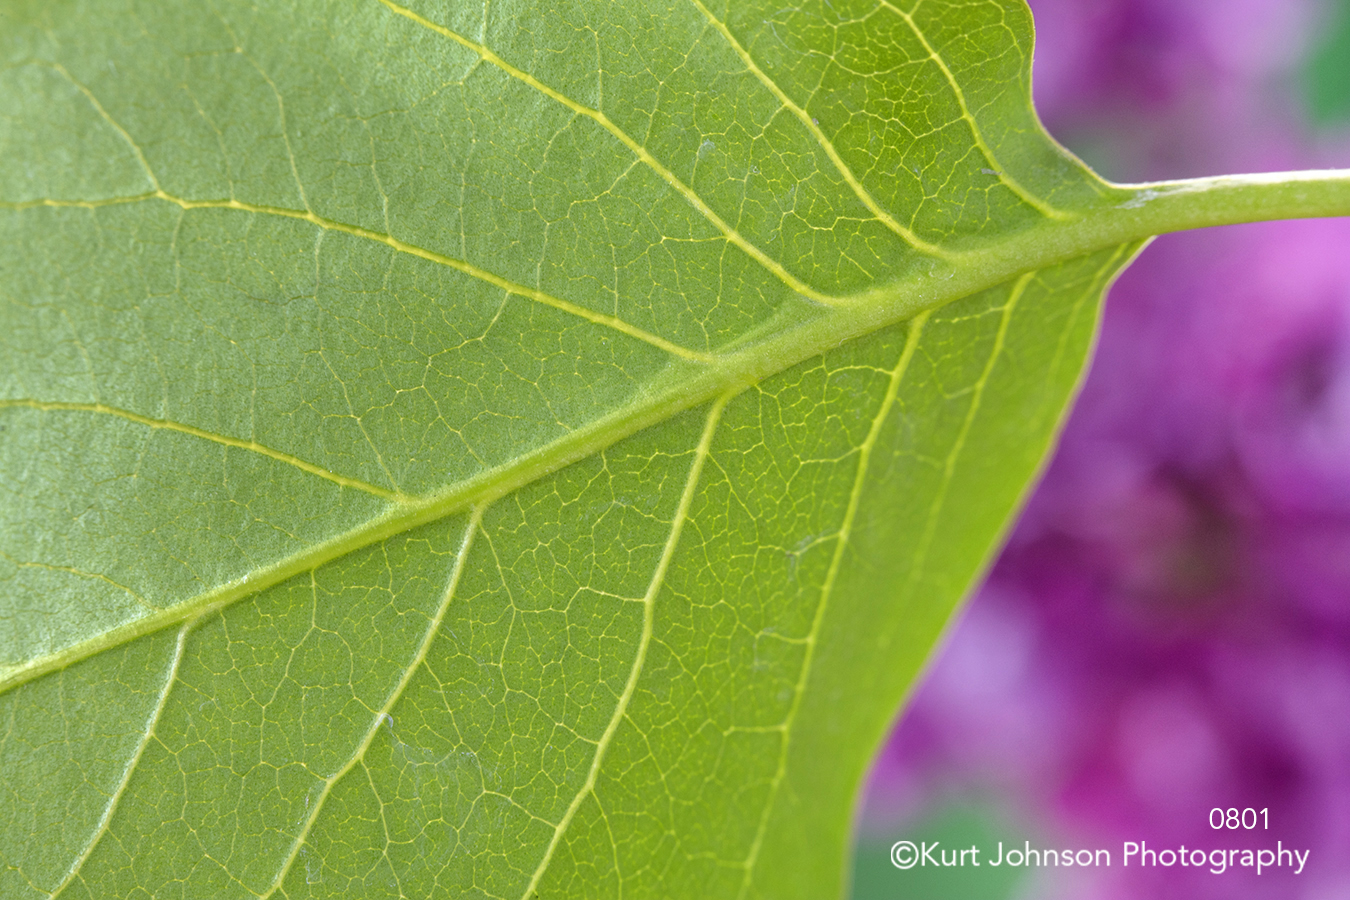 green leaf leaves lines close up details purple texture pattern